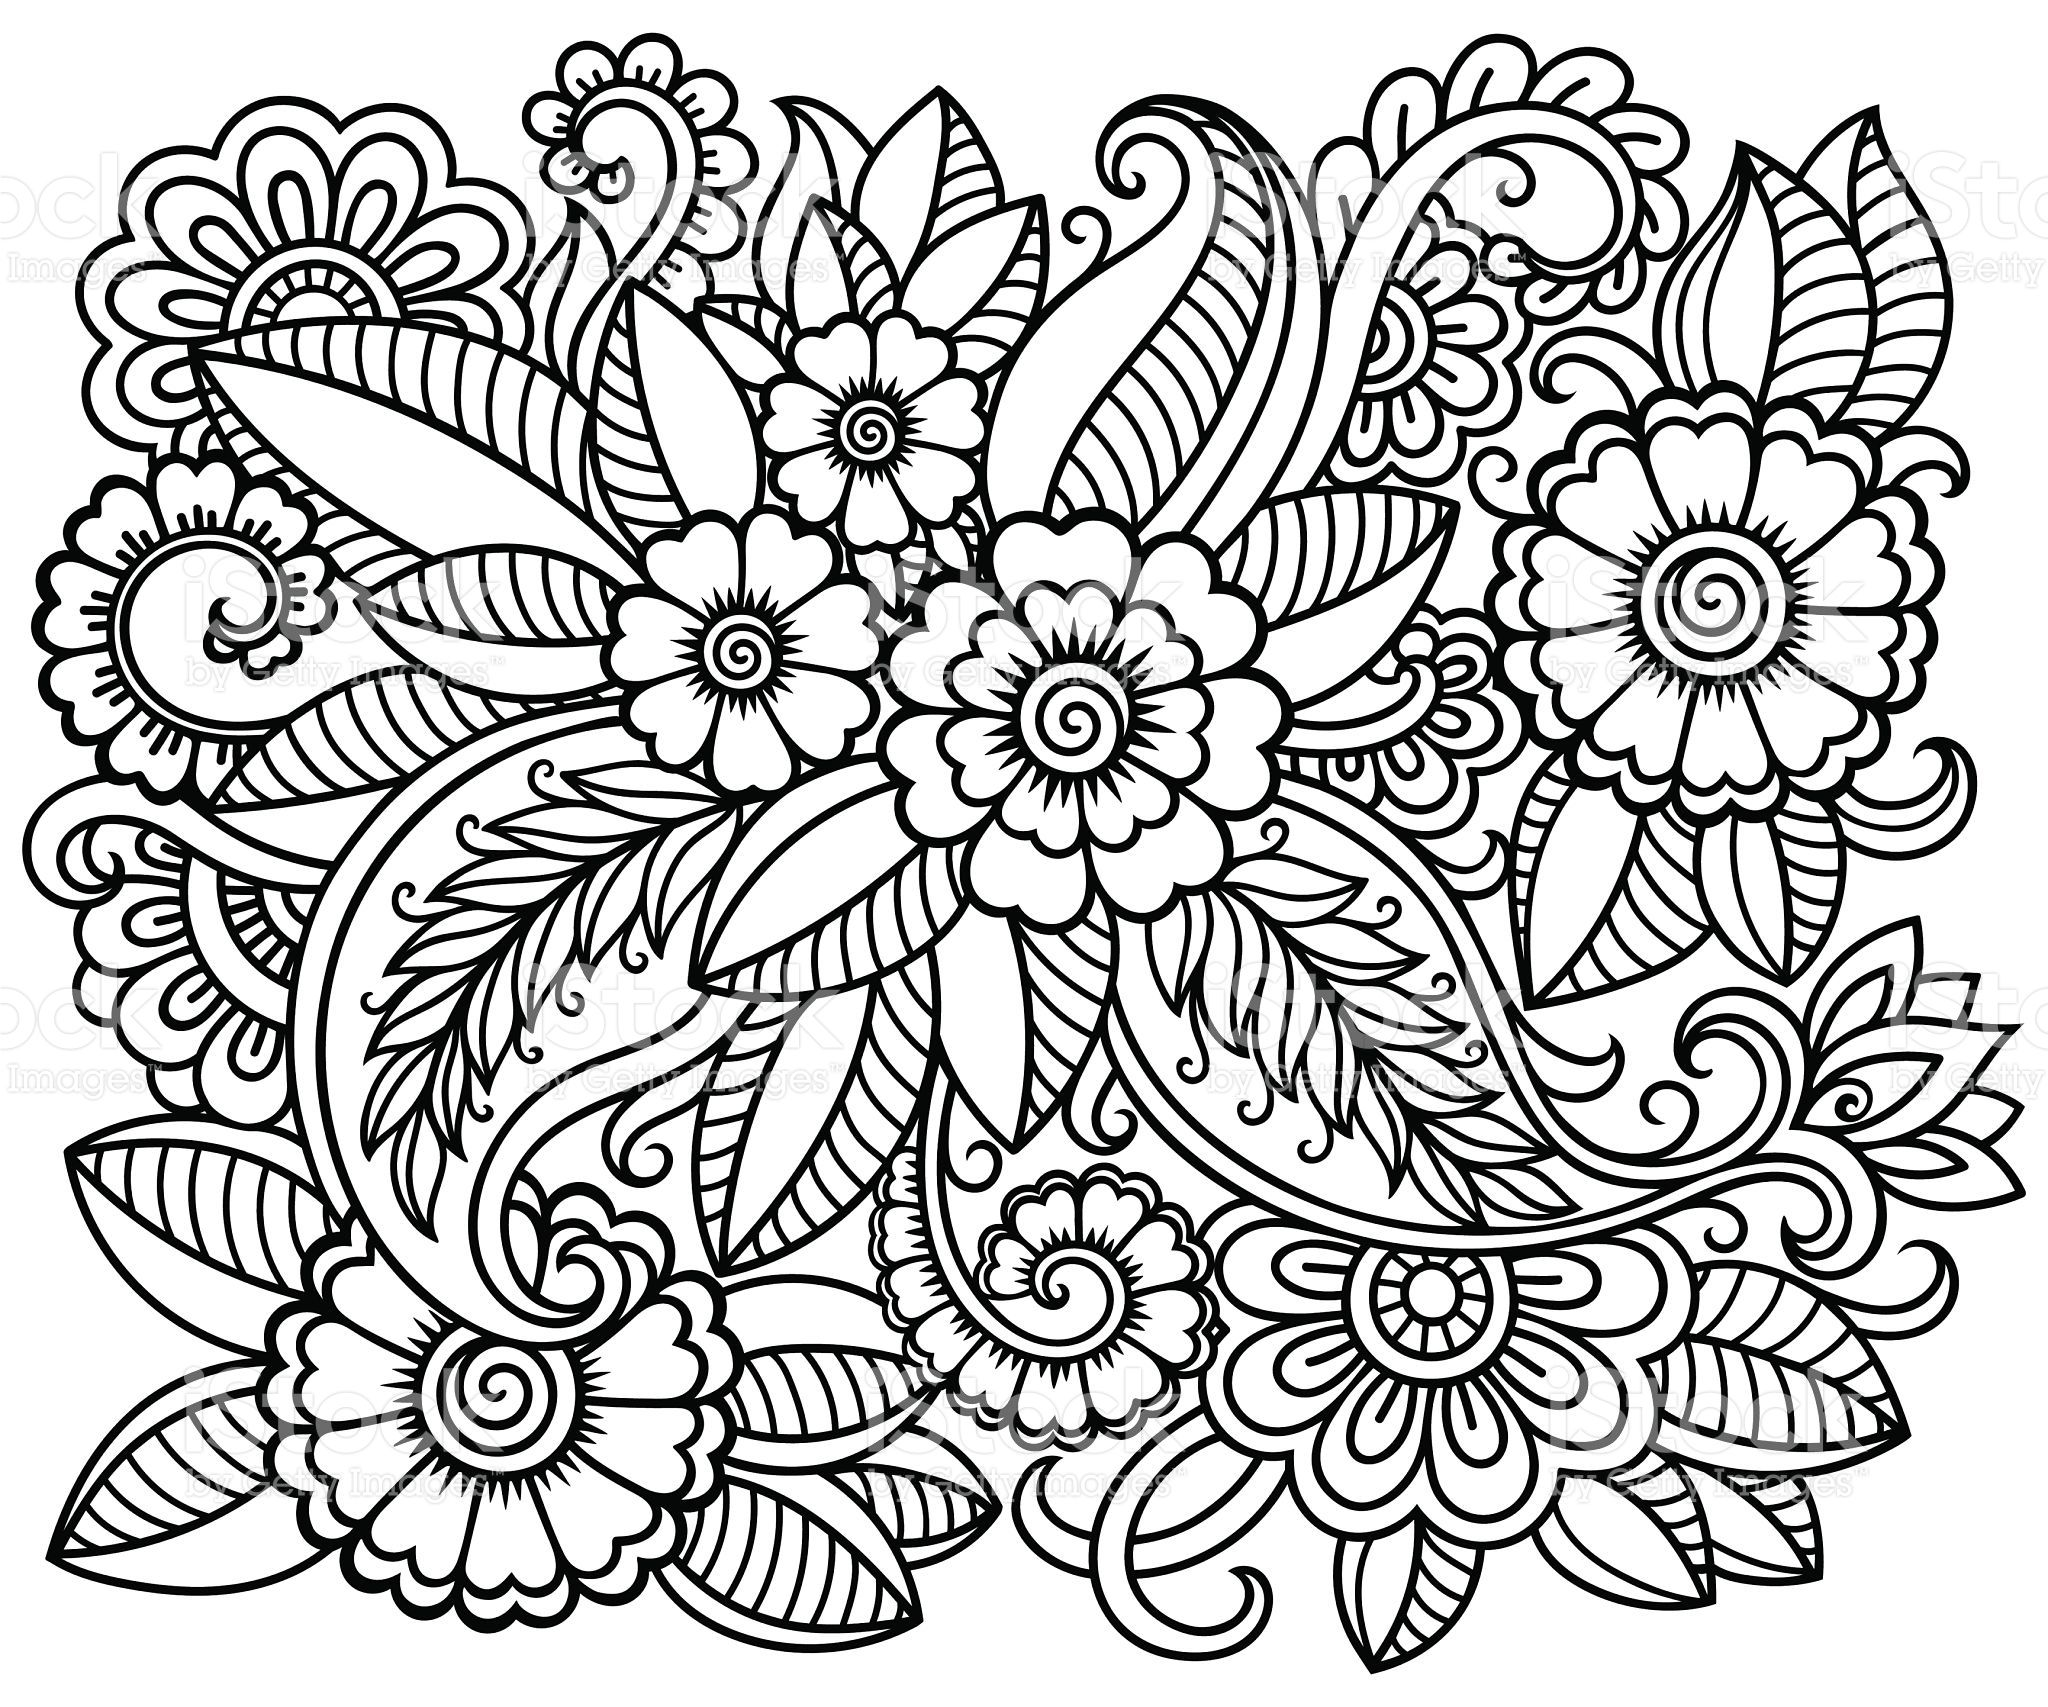 Doodle Floral Pattern For Coloring Book Vector Id583980452 2048 1707 Coloring Book Pages Doodle Patterns Pattern Coloring Pages